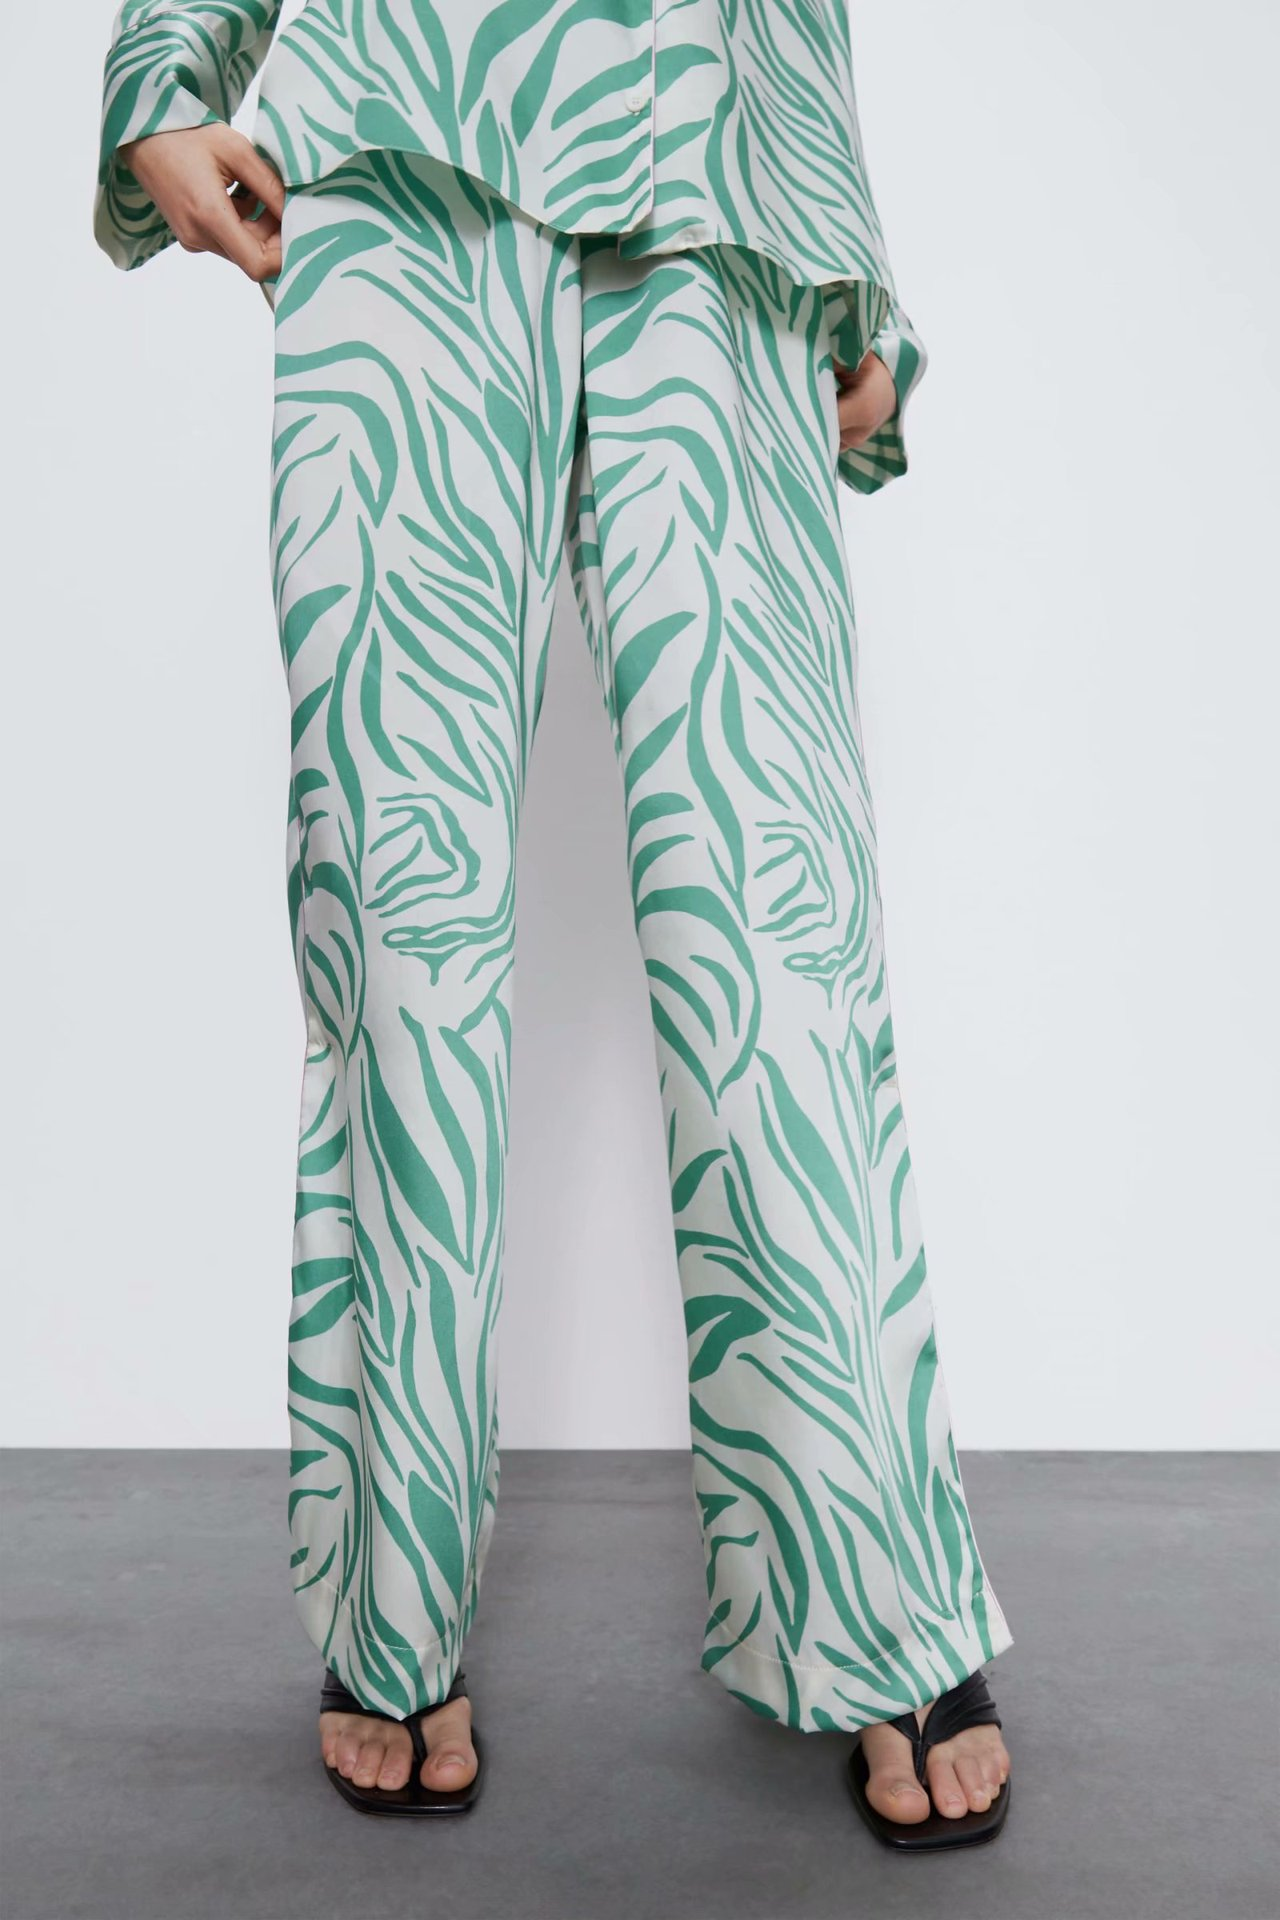 2020 New Spring Summer European Printed Household Female Green Trousers Zaraing Vadiming Sheining WOMEN Pants Trousers BGB2145